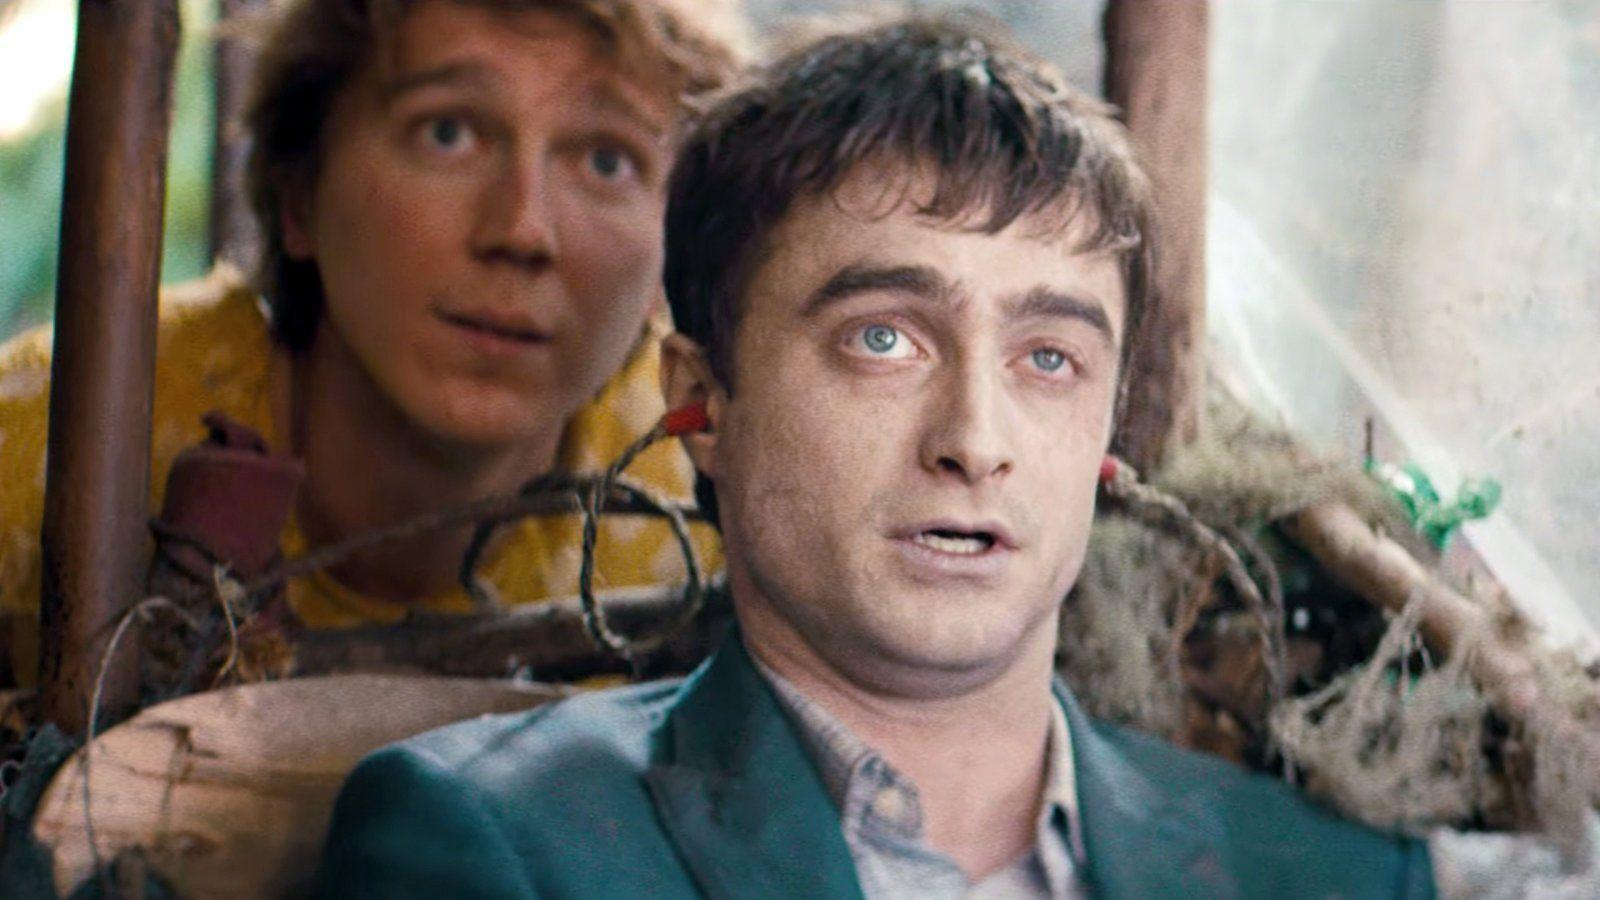 Swiss Army Man - NYT Watching